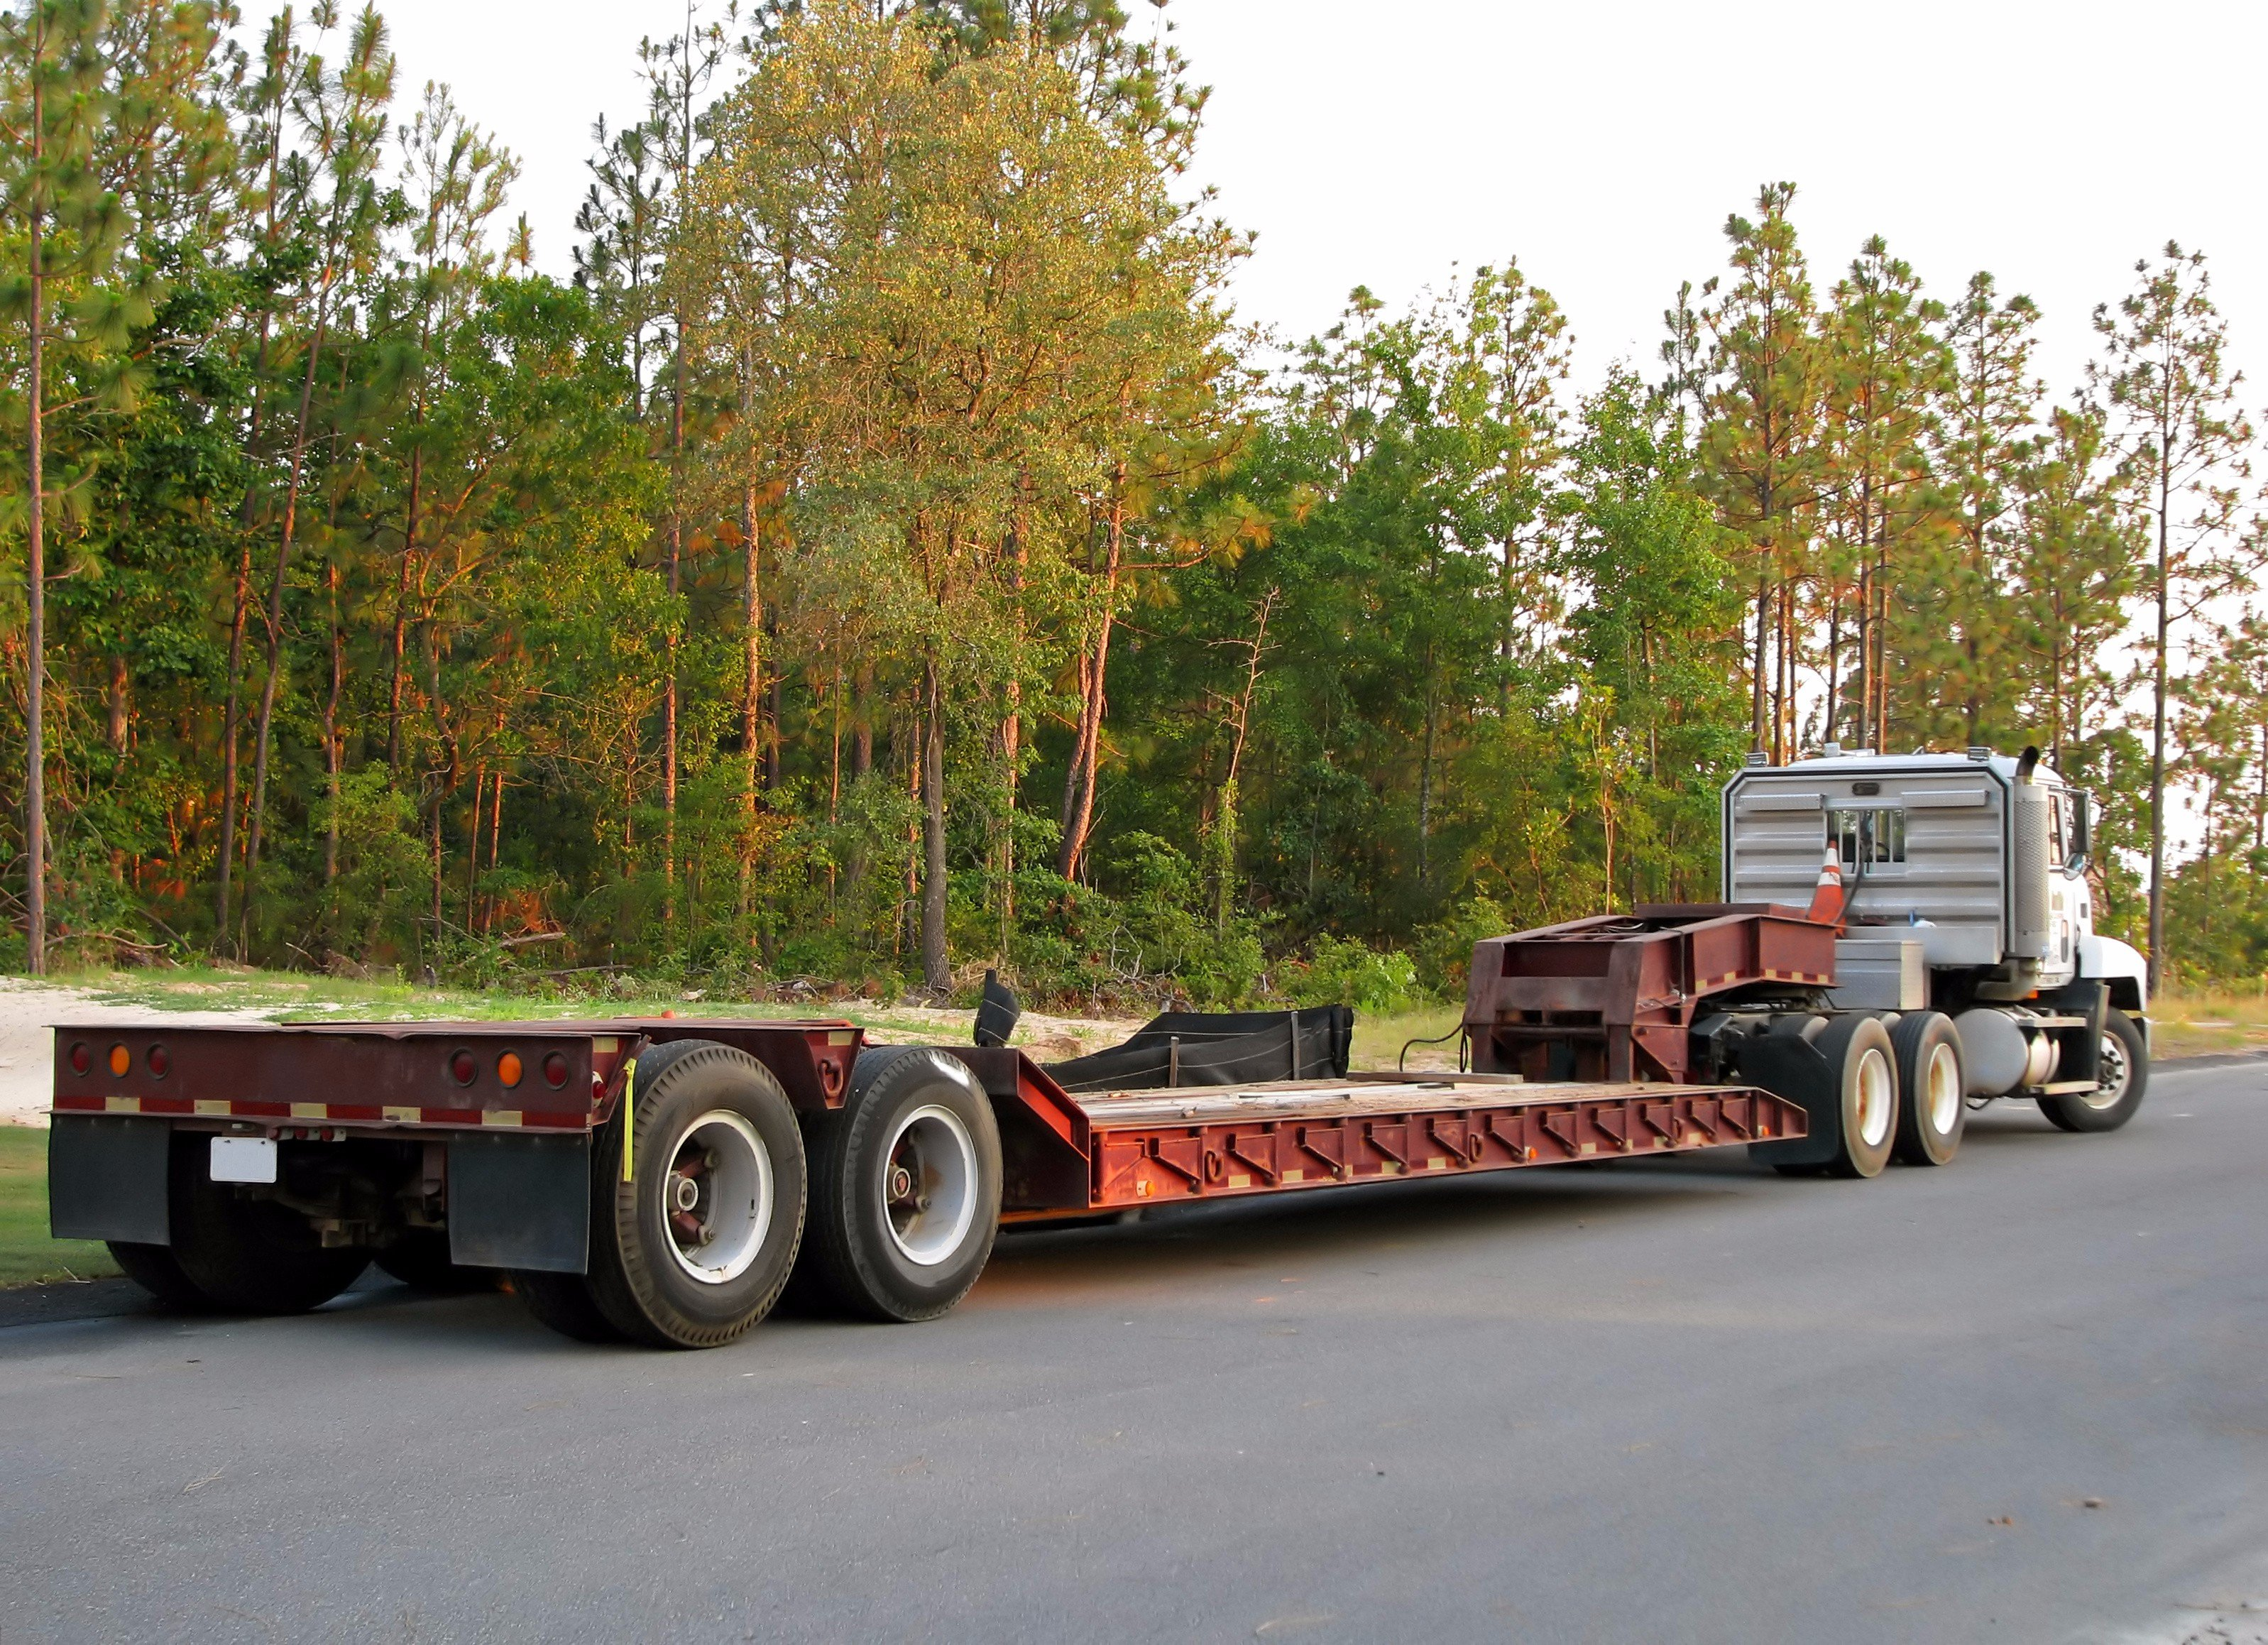 Career Trucking Flatbed Trucking Is A Challenging But Rewarding Career